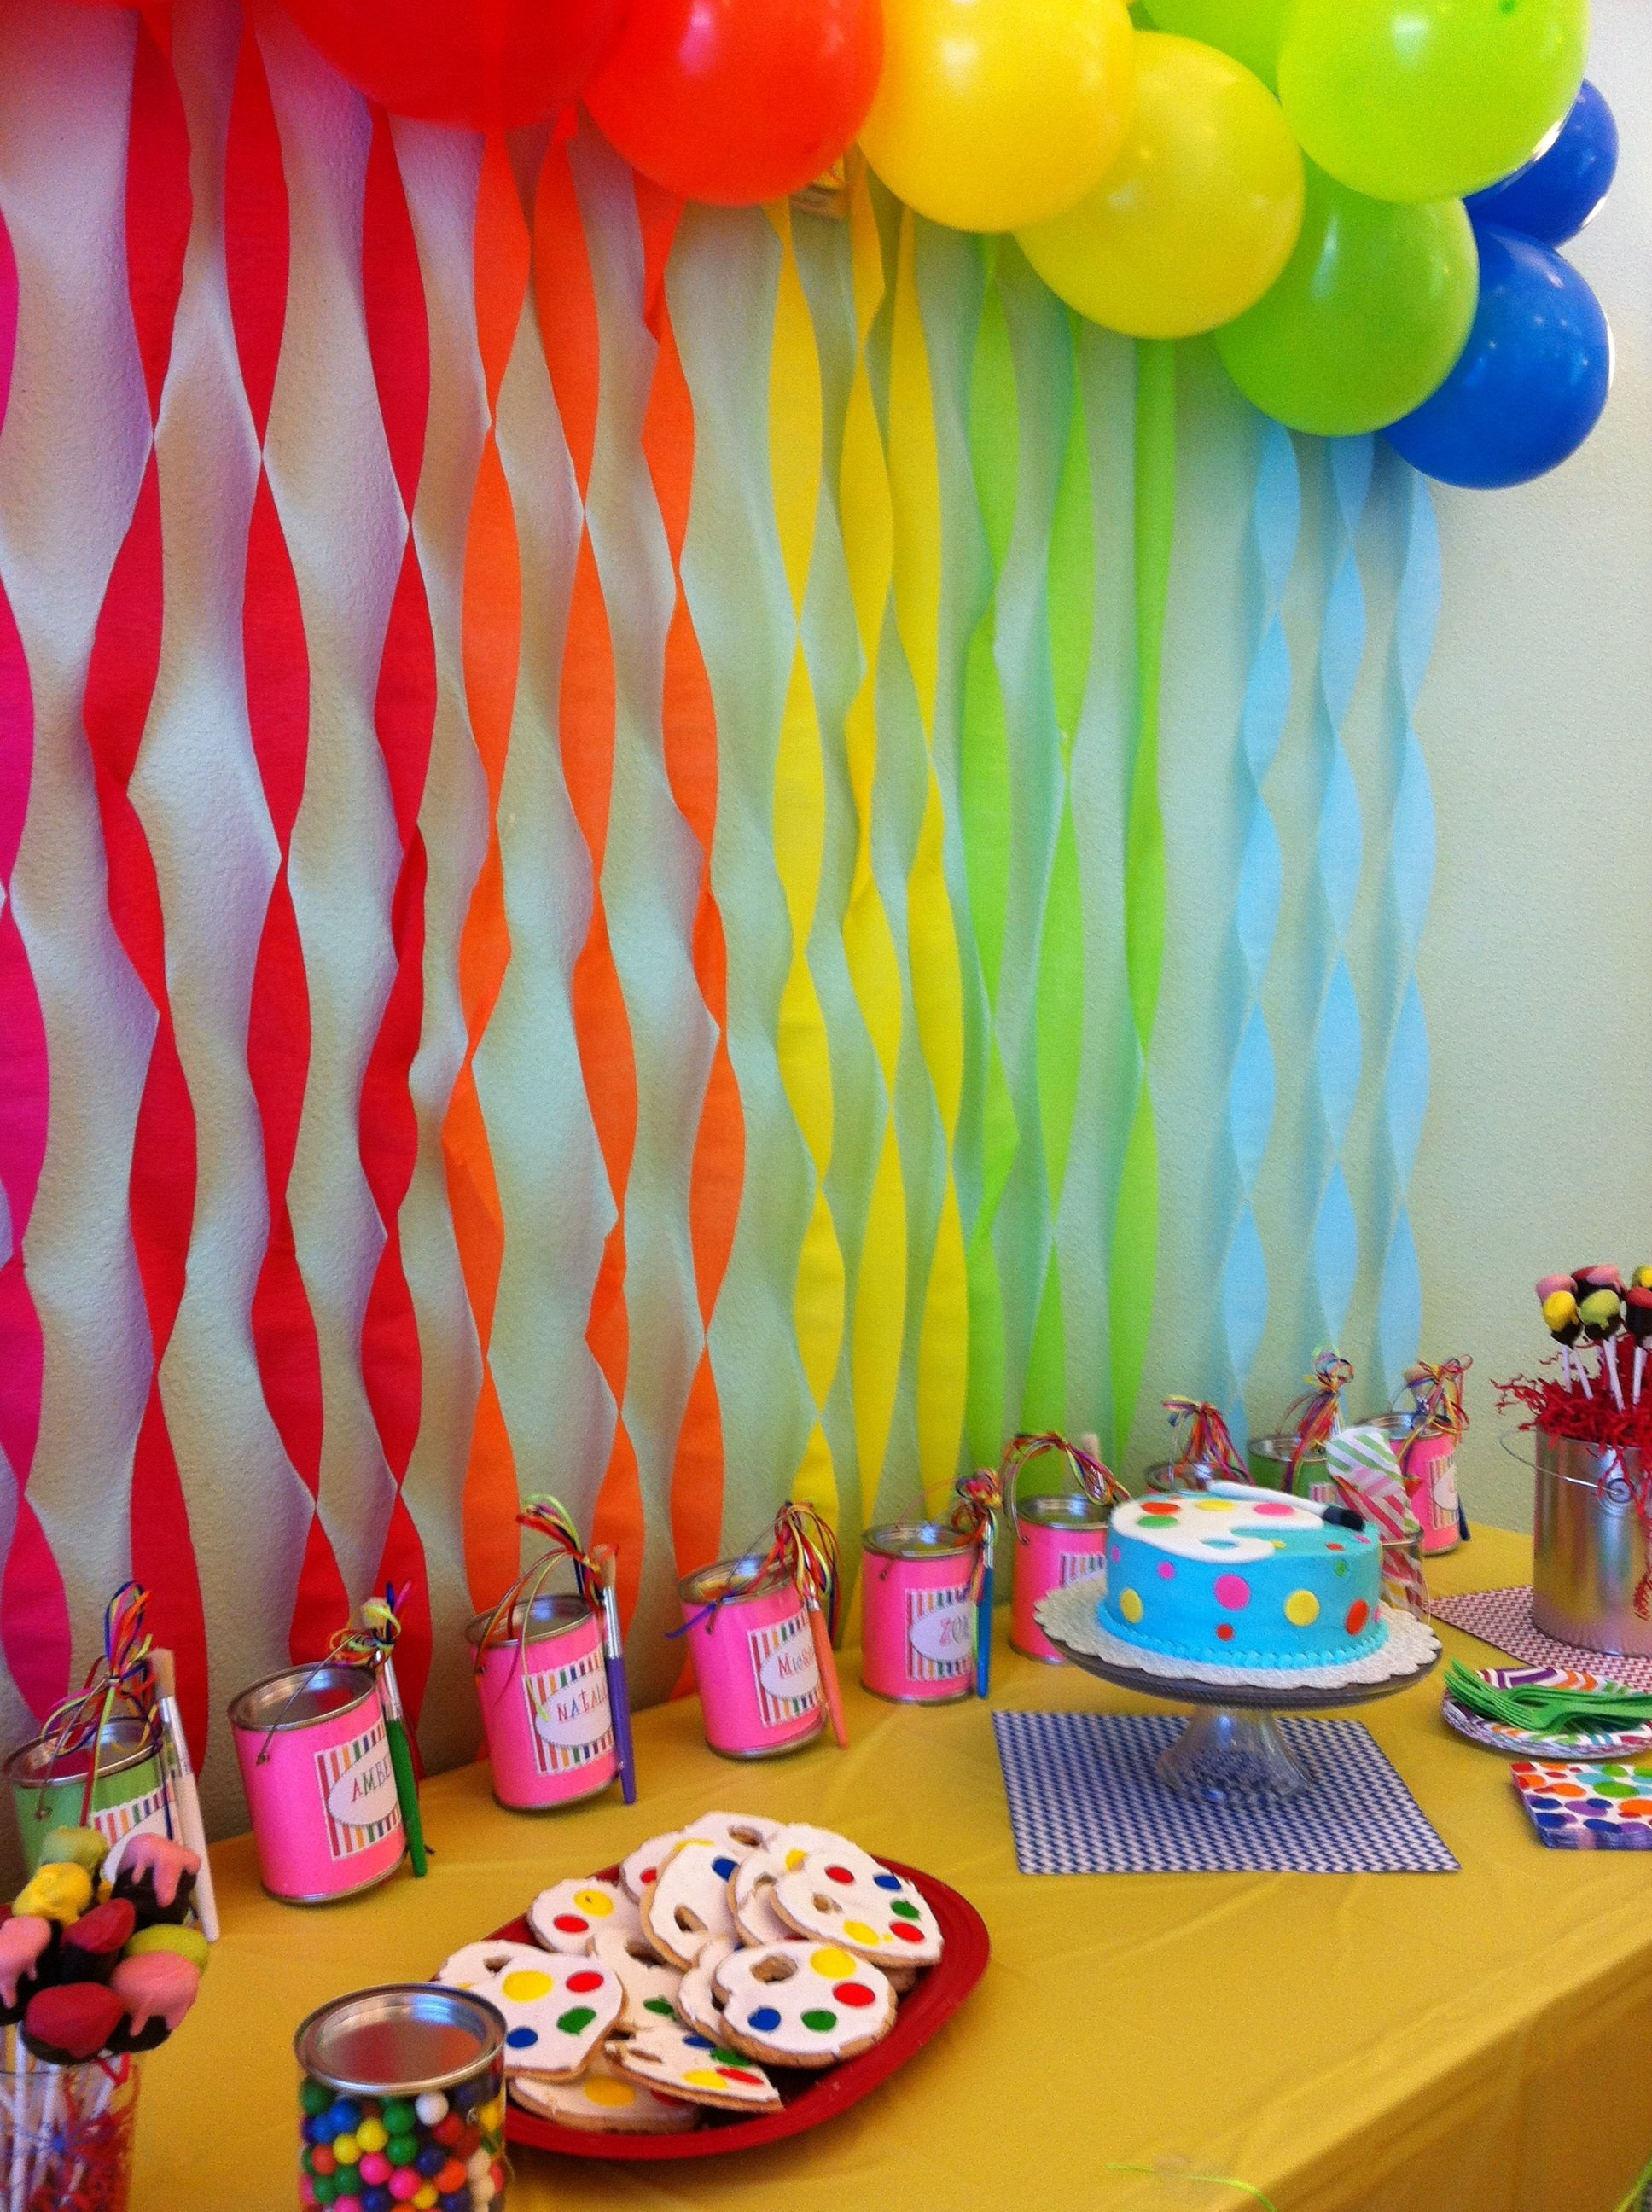 10 Unique 7 Year Old Boy Birthday Party Ideas 8 year old girl birthday art party art party pinterest art 17 2020